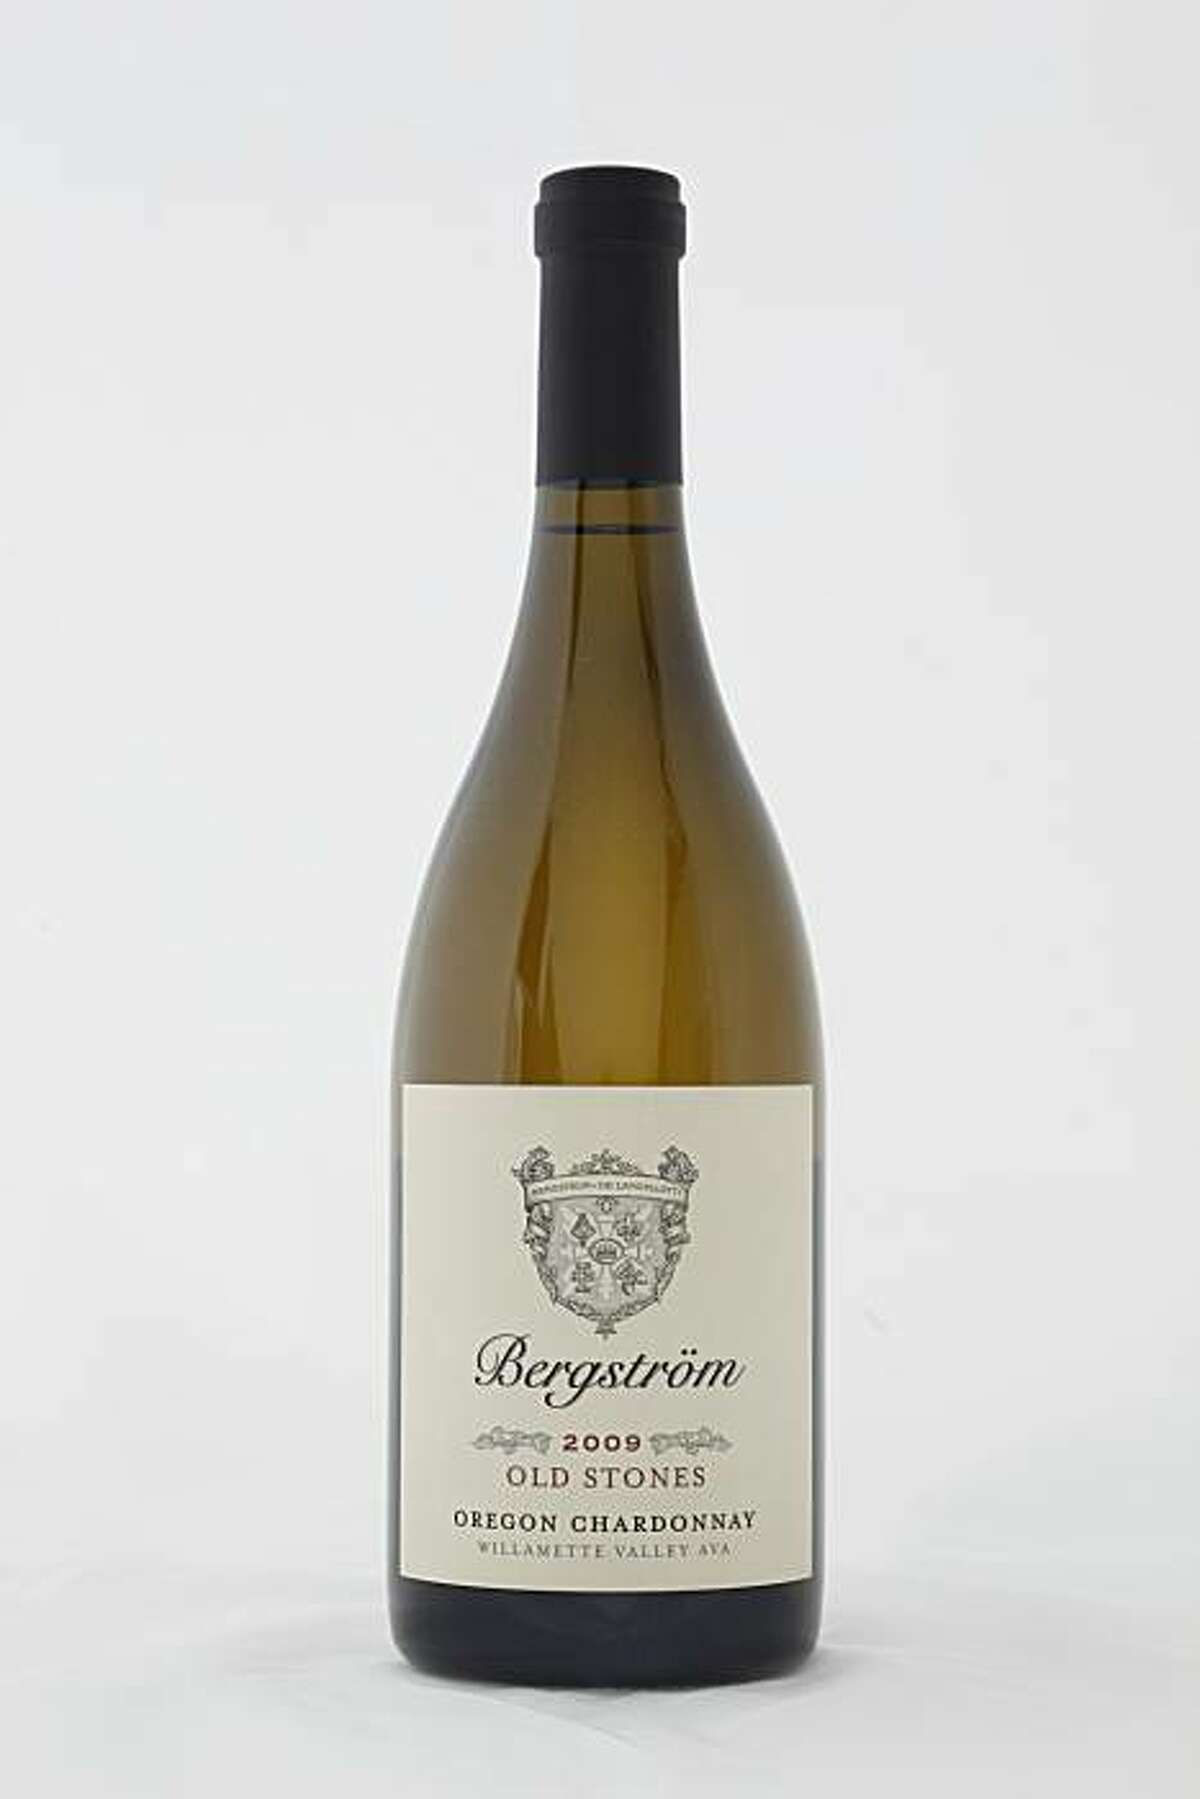 2009 Bergstrom Old Stones Willamette Valley Chardonnay ($30) as seen in San Francisco, Calif., on February 16, 2011.